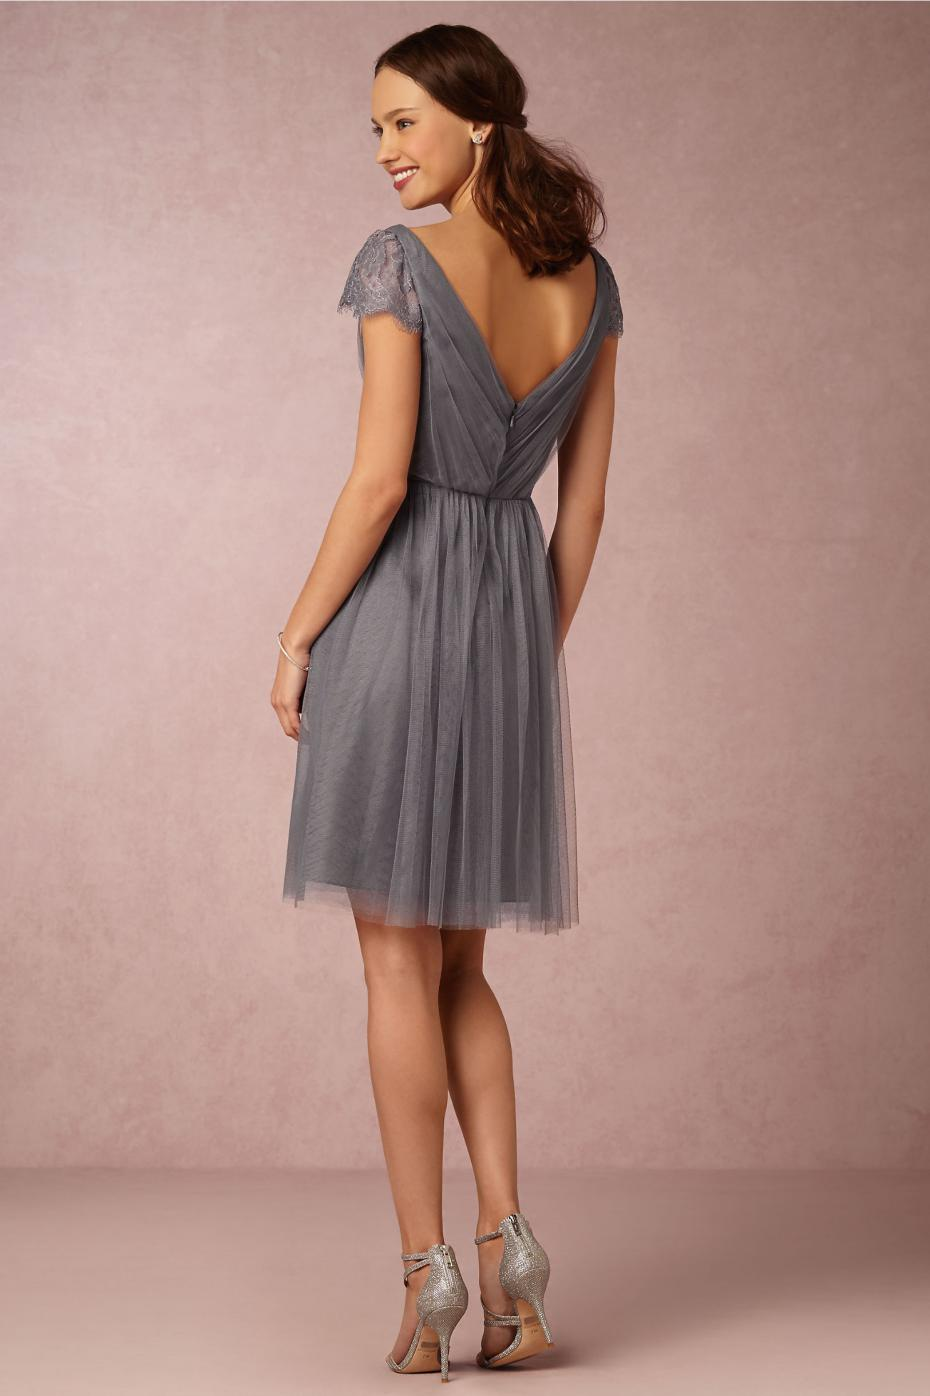 Tea length grey bridesmaid dresses with short sleeves v neck tea length grey bridesmaid dresses with short sleeves v neck chiffon ruffles lace silver bridesmaid dress adult gown dresses in bridesmaid dresses from ombrellifo Image collections